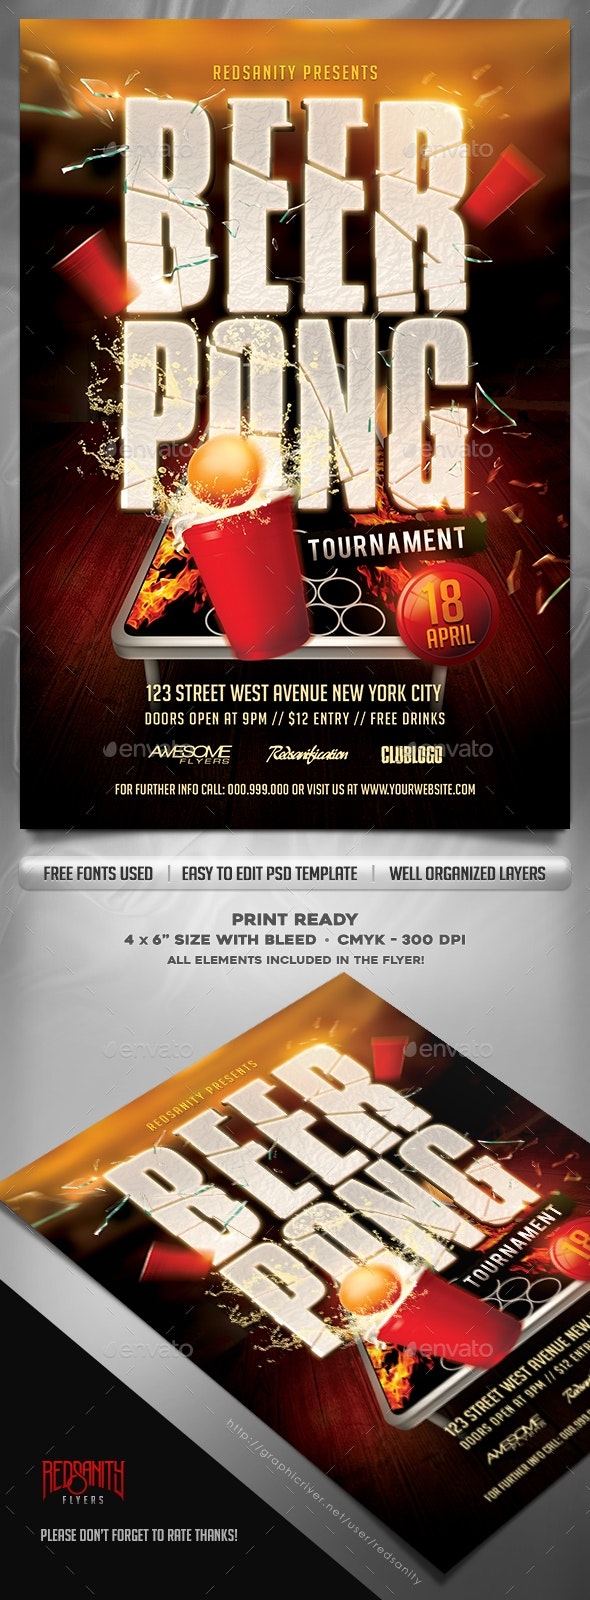 Beer Pong Tournament Flyer Template - Events Flyers